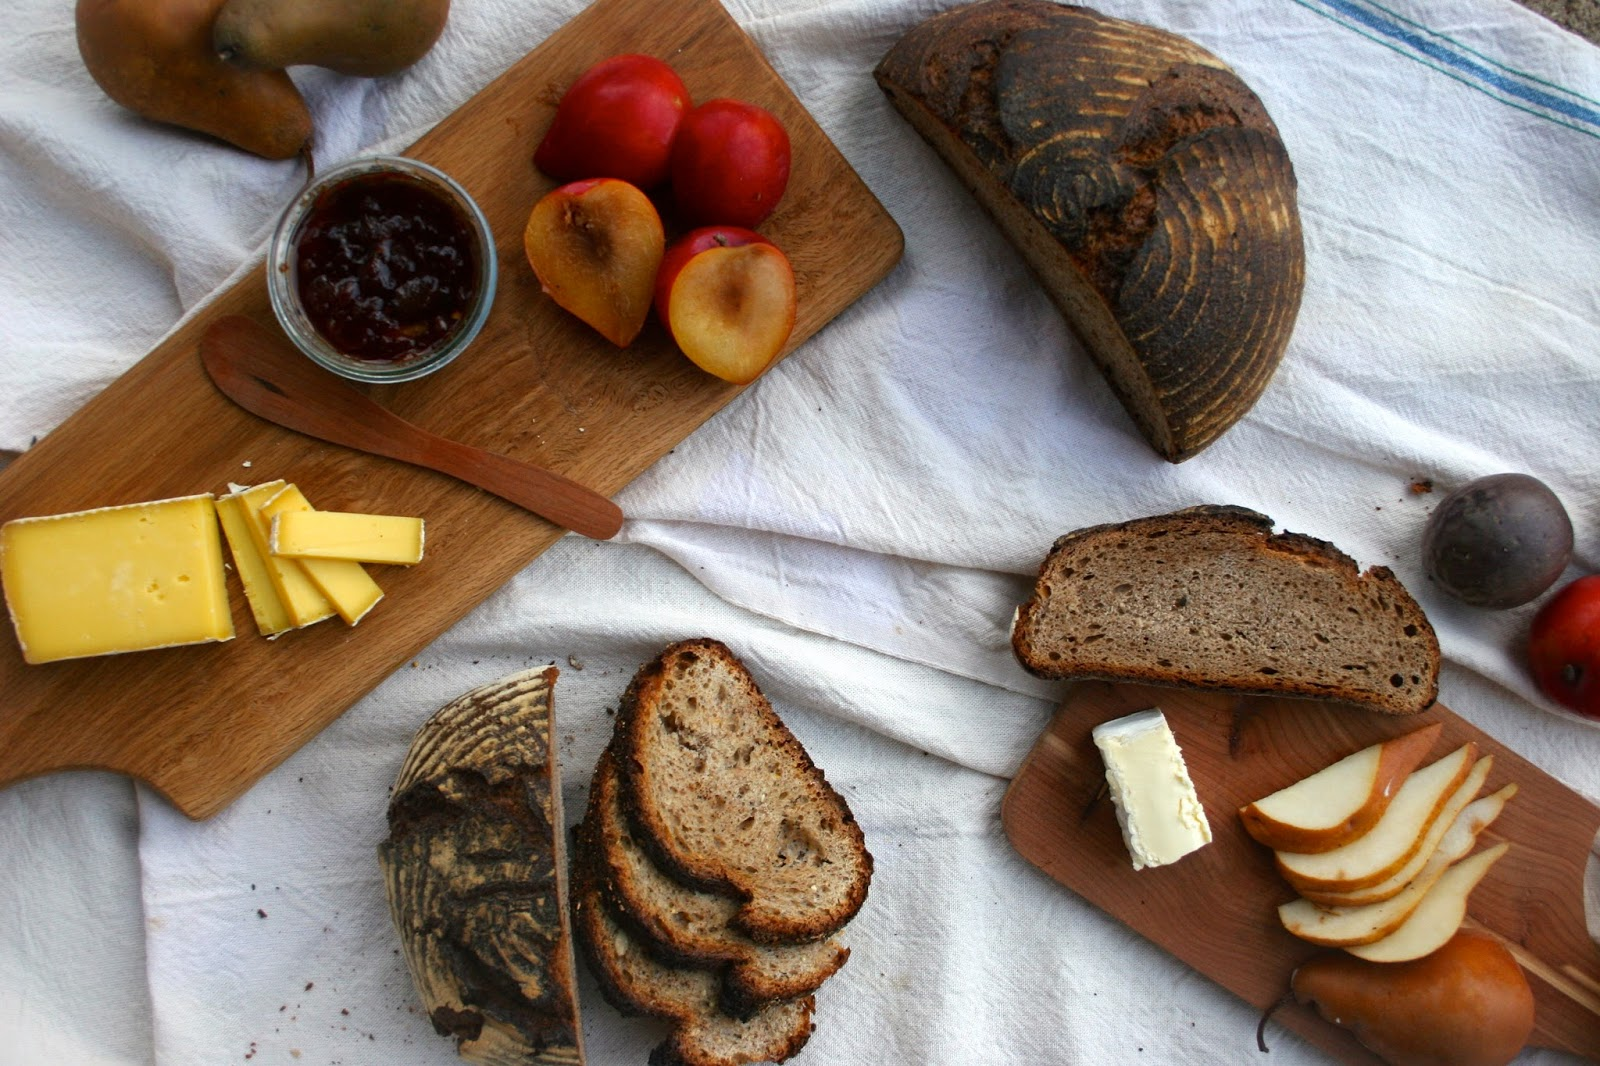 Cheese Place with Whole Grain Bread, Pears, and Plums